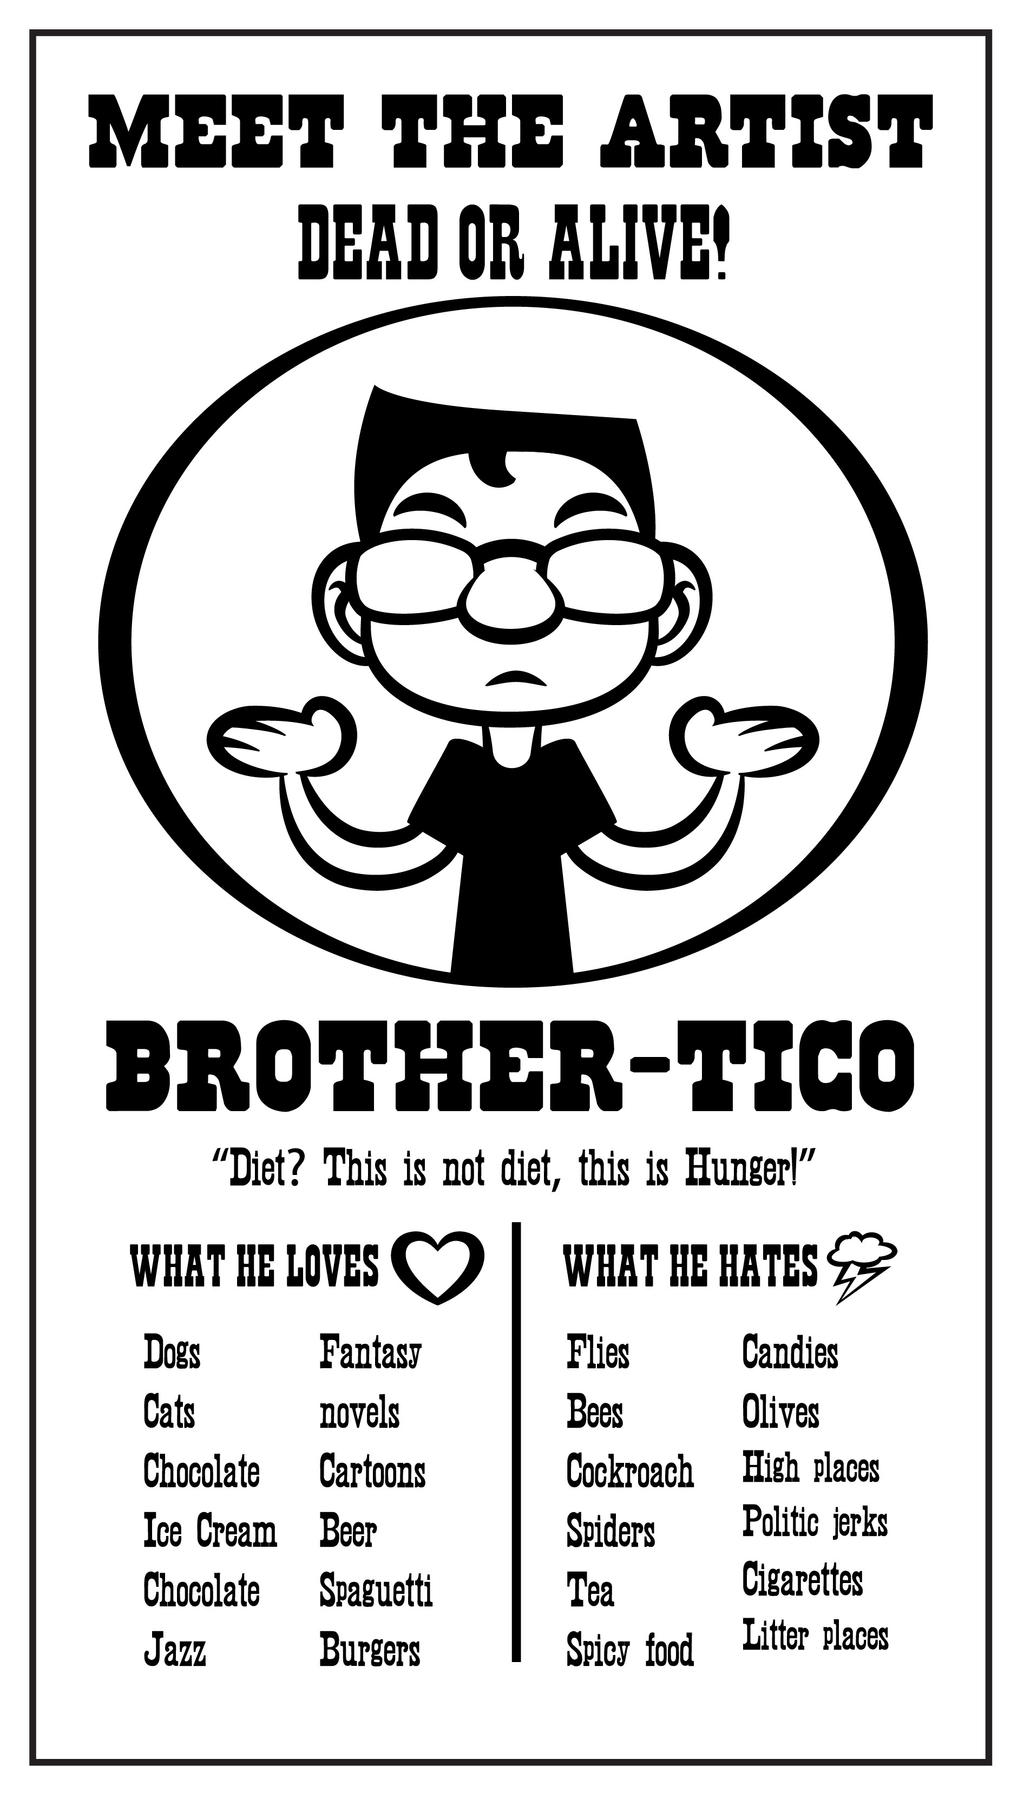 Brother-Tico's Profile Picture